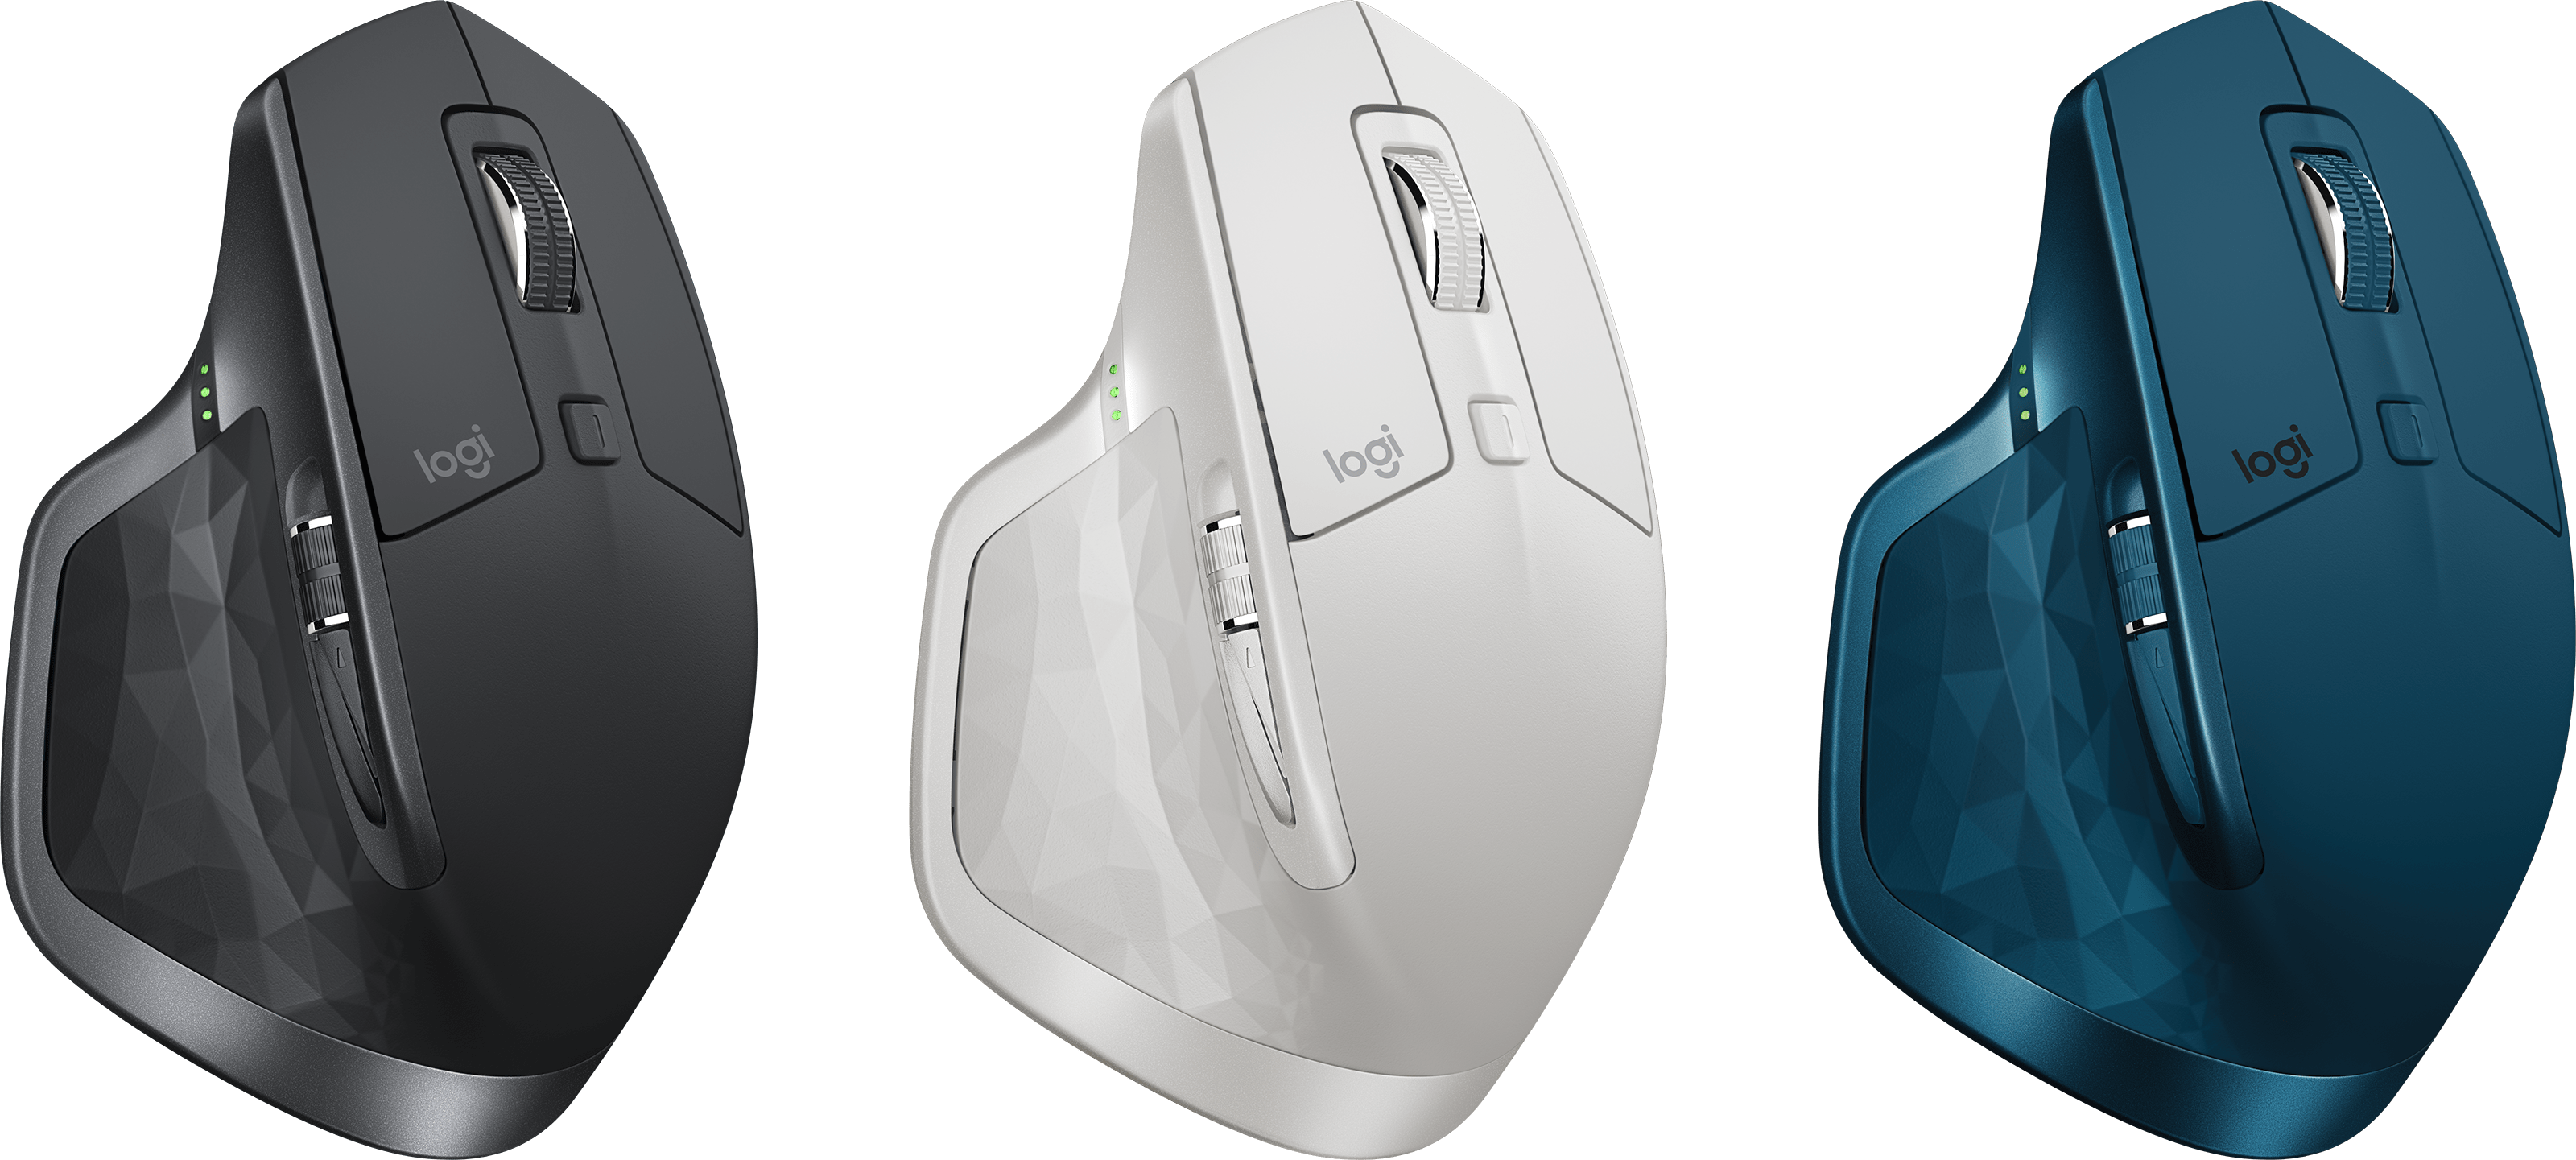 Todas as cores do Logitech MX Master 2S